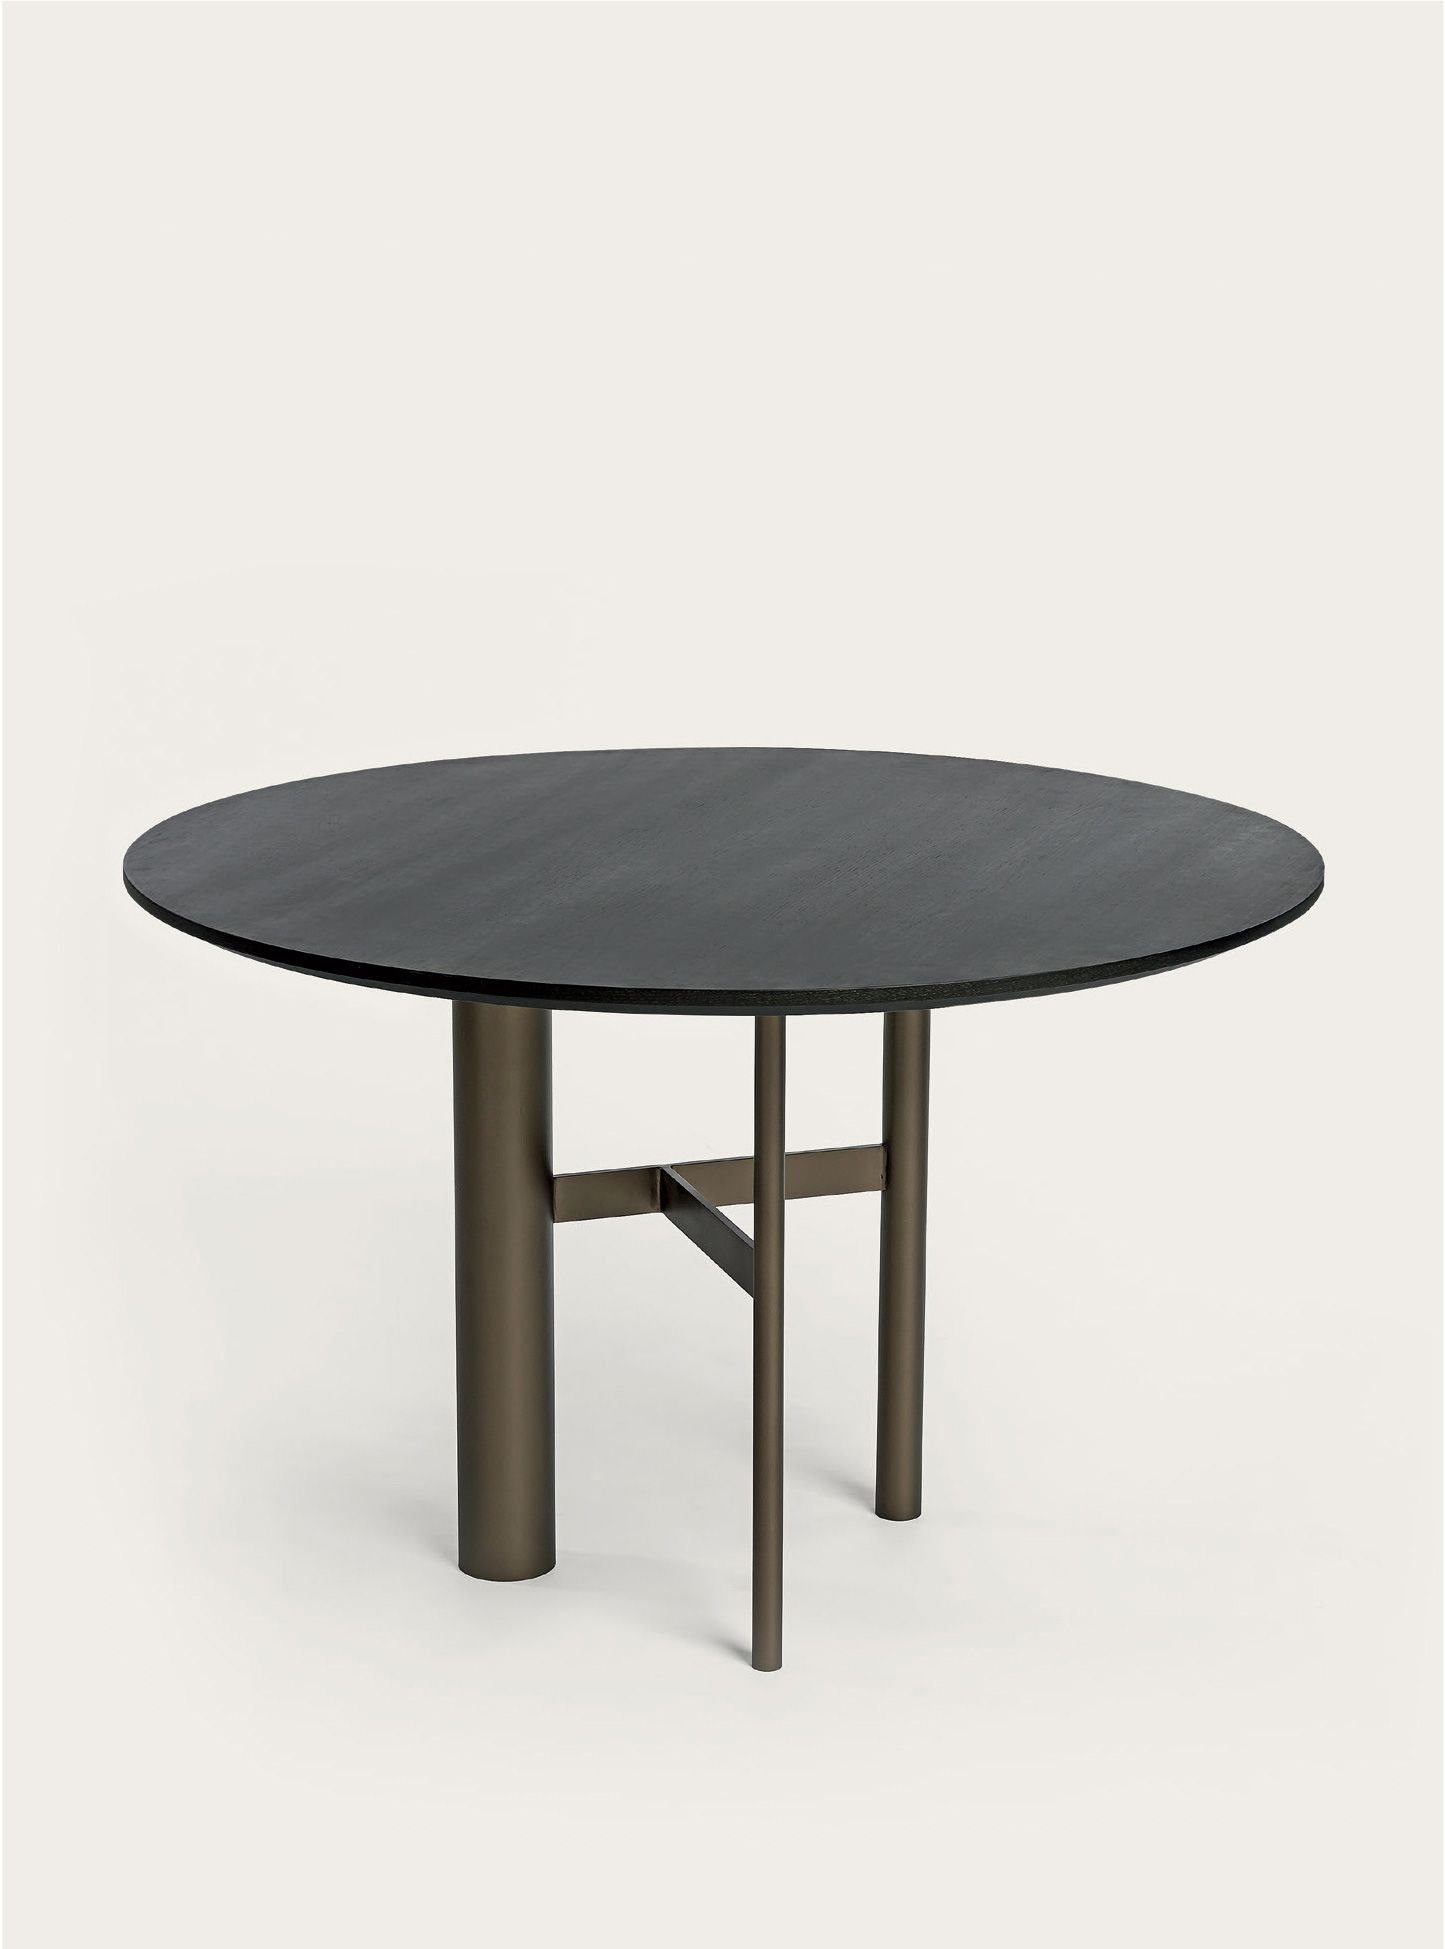 Shakedesign Tables And Desks Park Round Fixed Table With Light